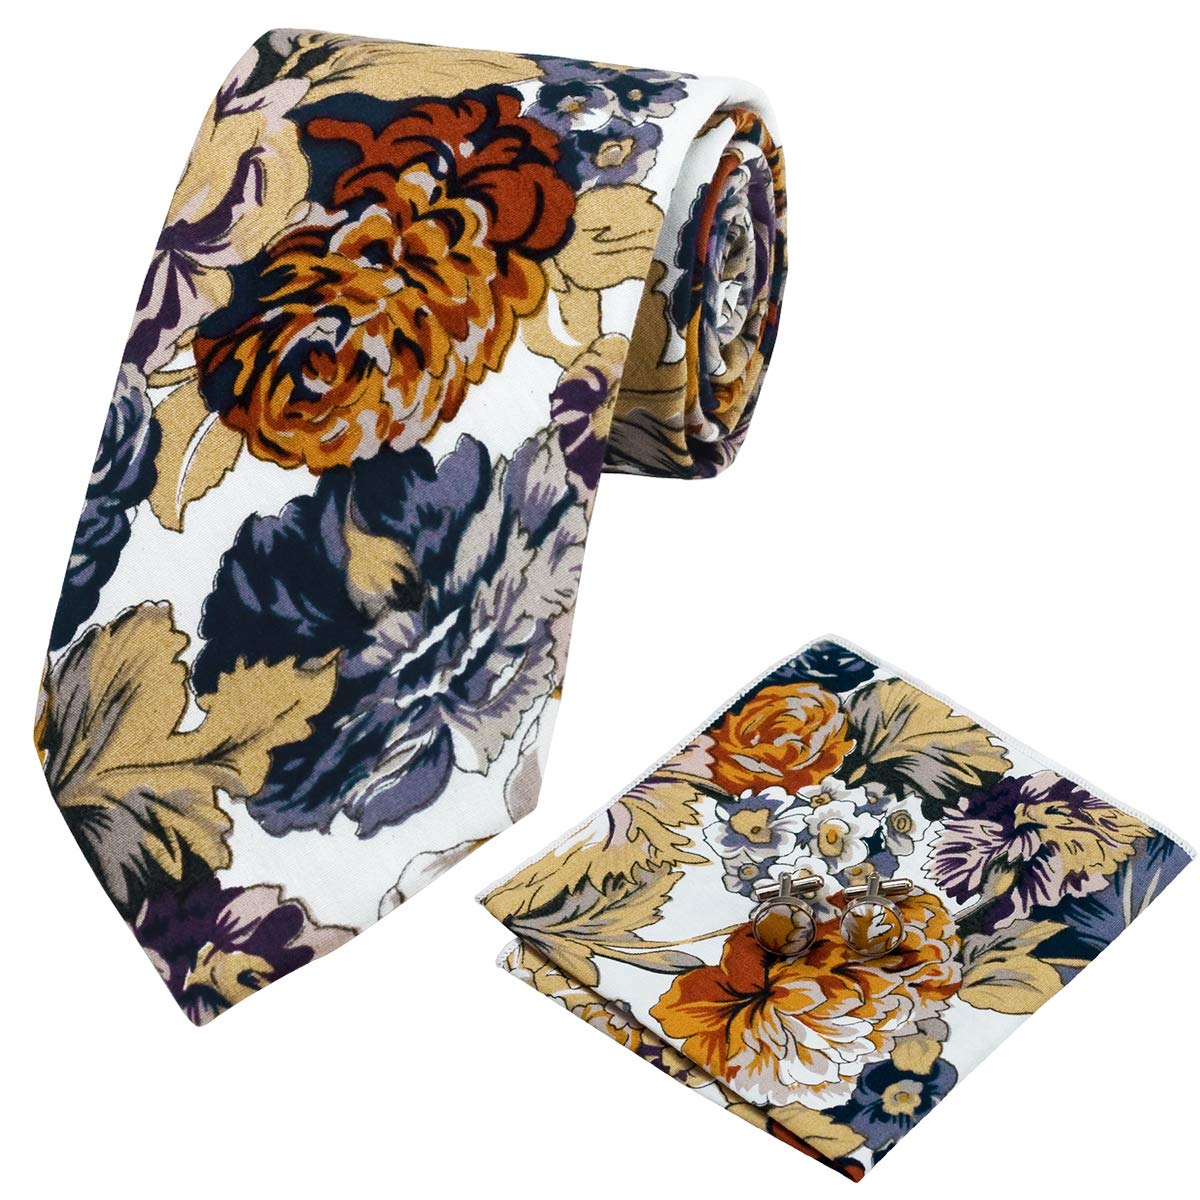 Fashion men ties flower tie pocket square cufflinks necktie set wedding party business